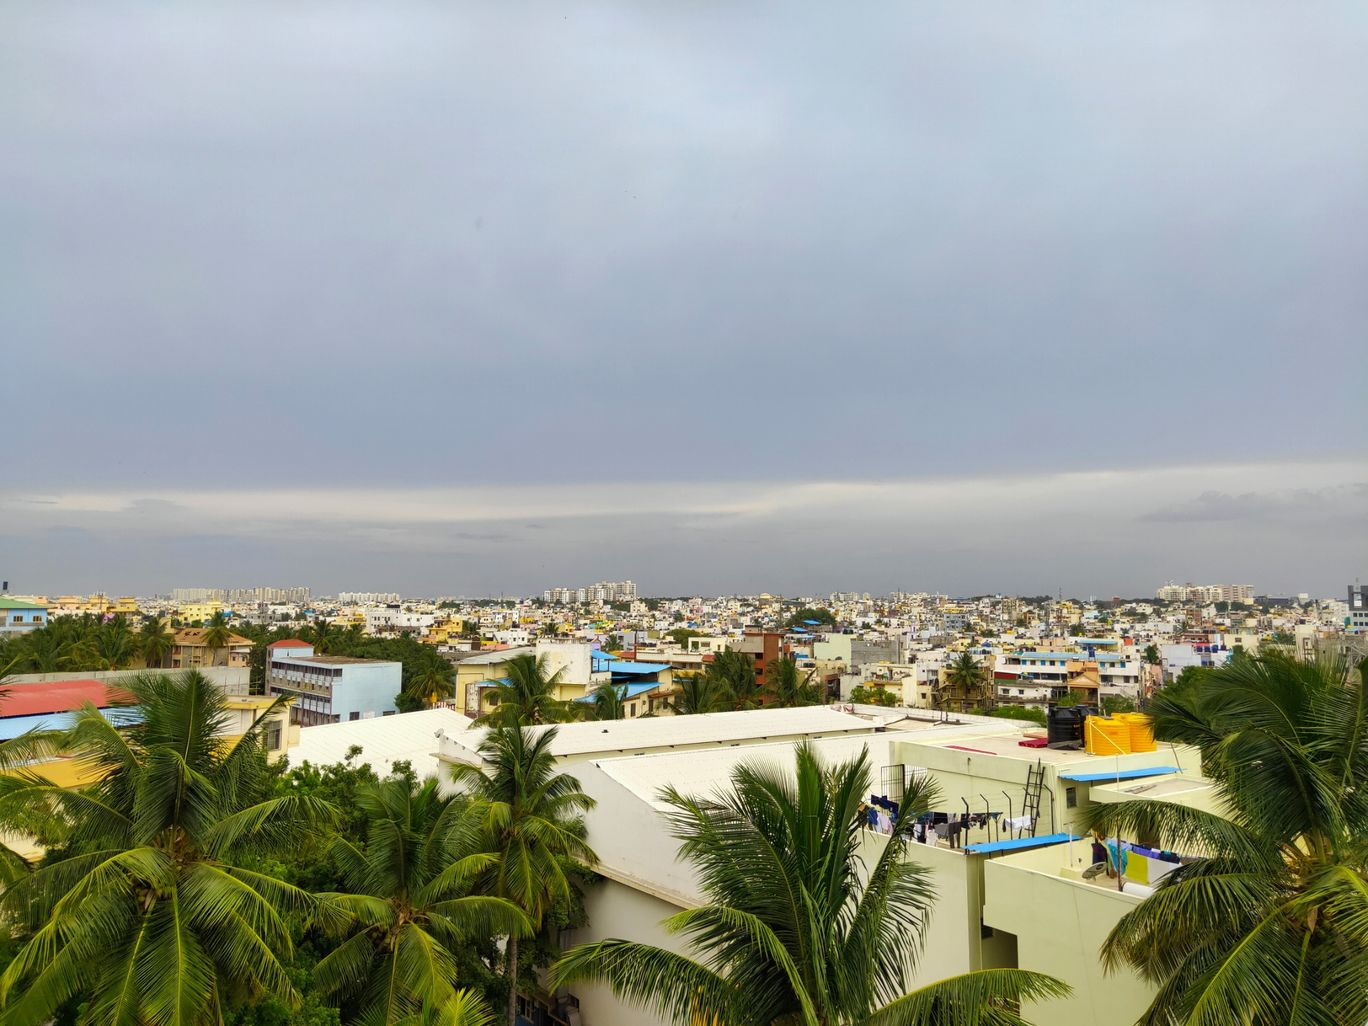 Photo of Venkateshwara Layout By I'm Magpie